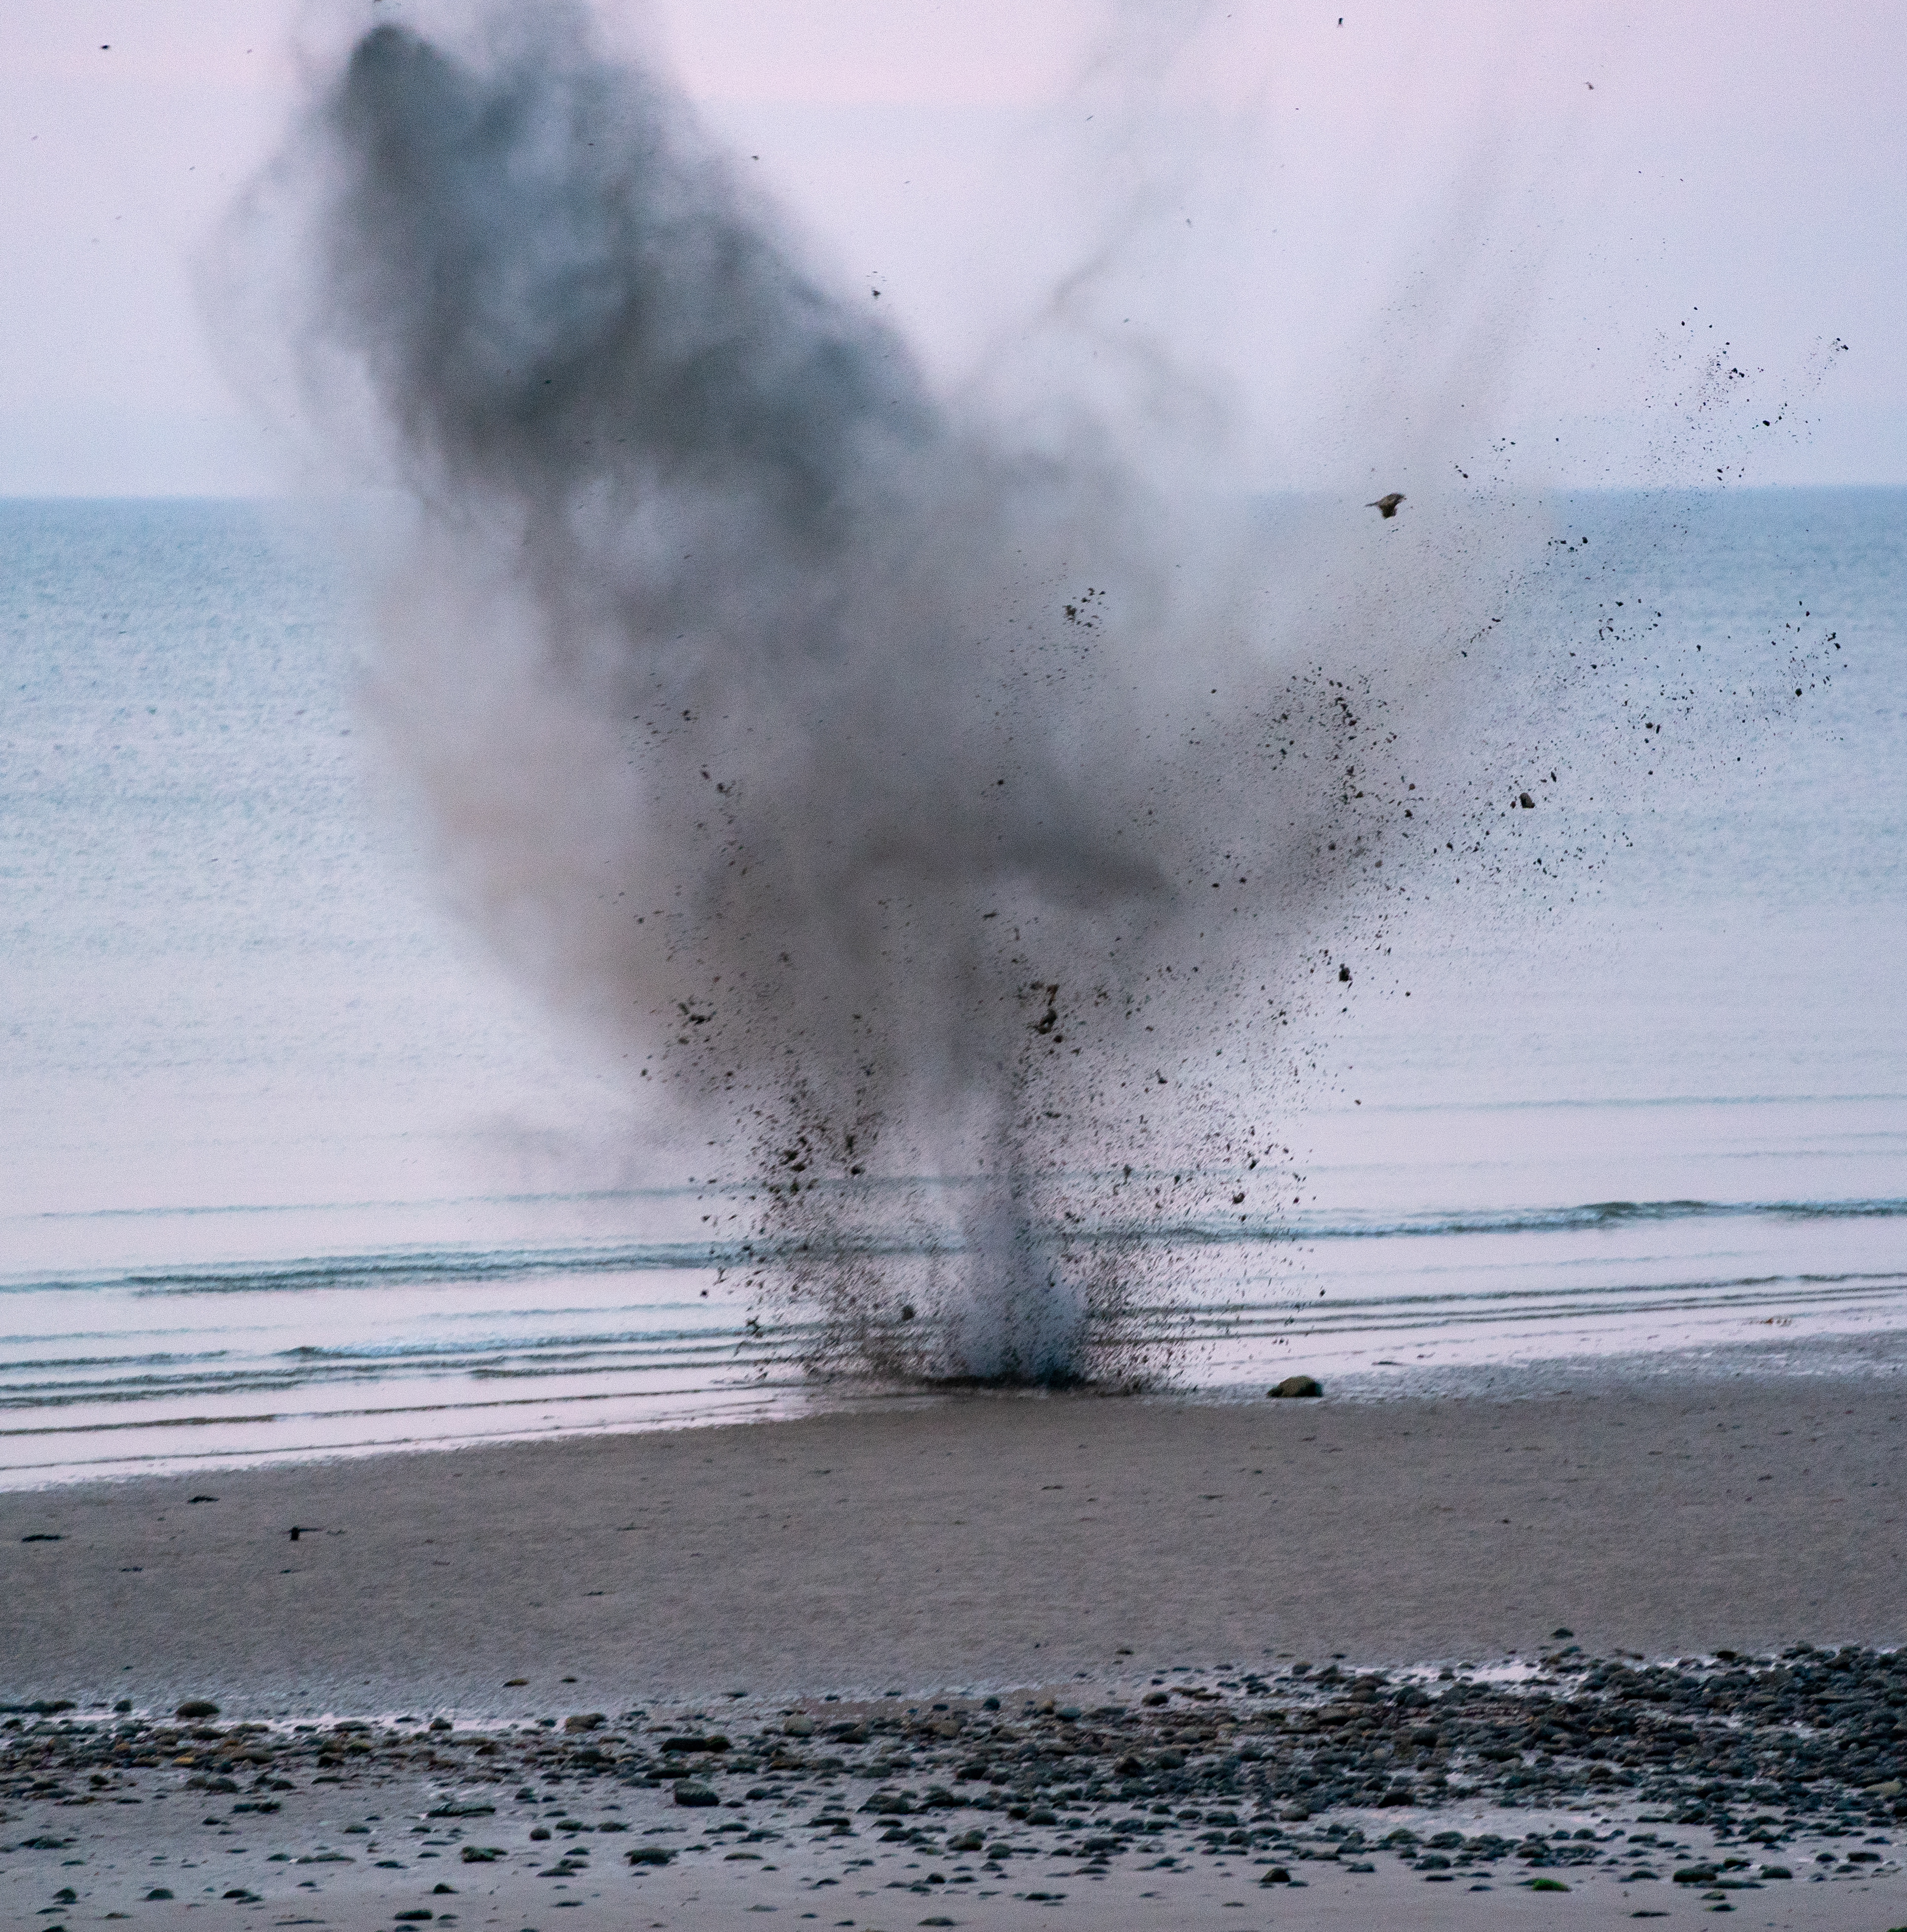 The Royal Navy carried out the controlled explosion at Roseisle Beach